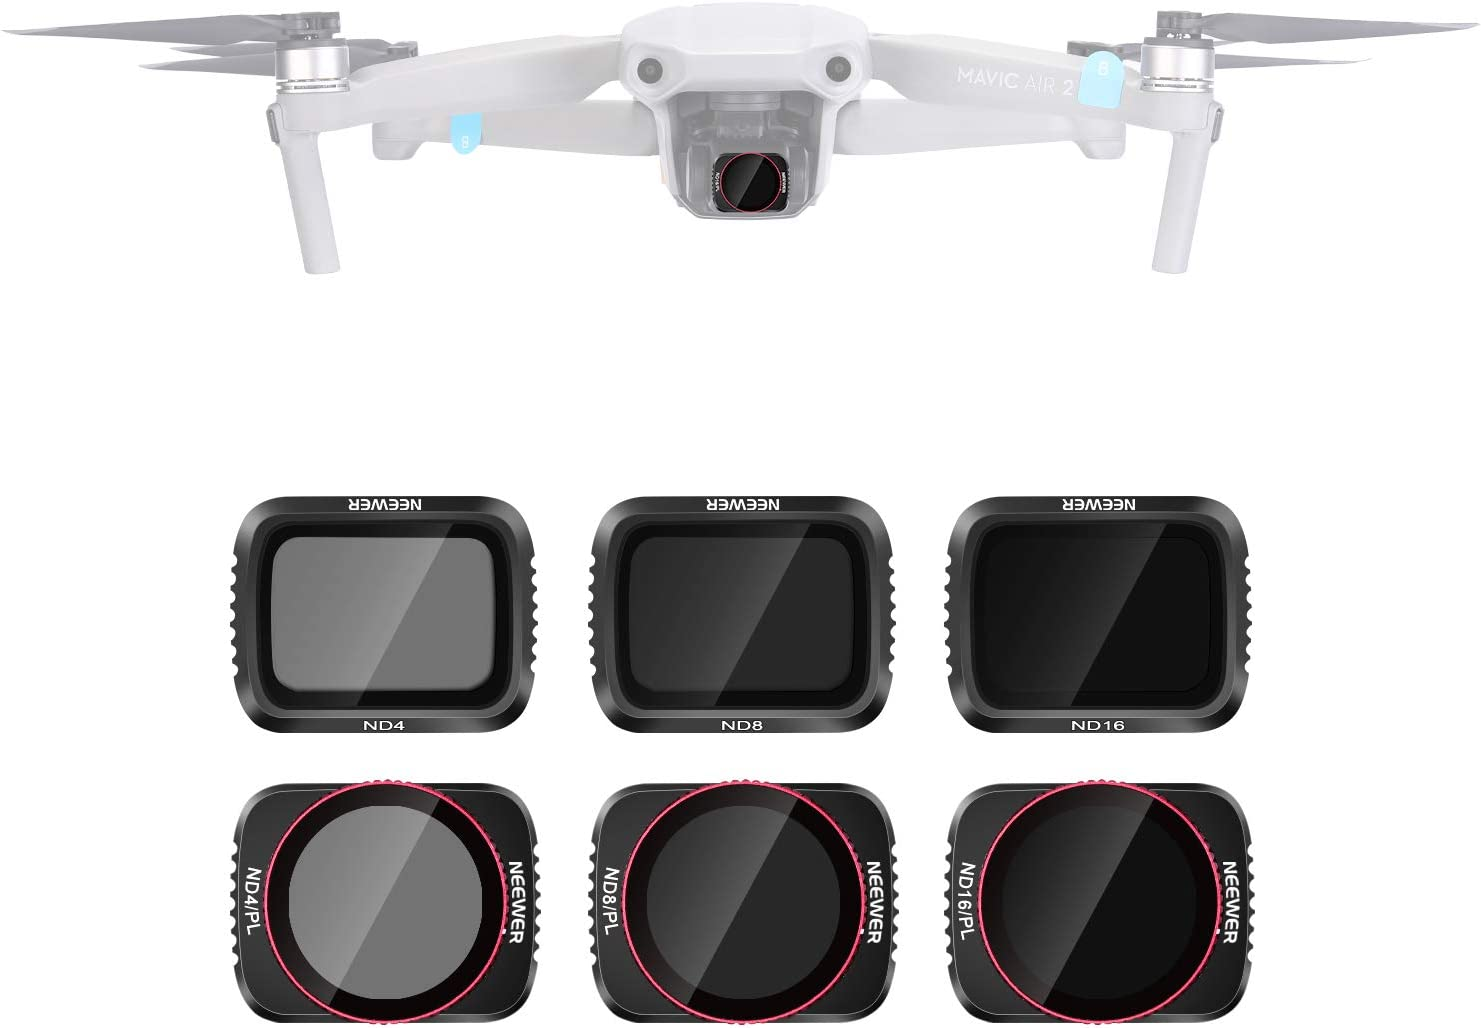 Neewer Camera Lens Filters Compatible with DJI Mavic Air 2 Lens Filter Set, Multi-Coated Filters Pack Accessories (6 Packs) ND4, ND8, ND16, ND4/PL, ND8/PL, ND16/PL